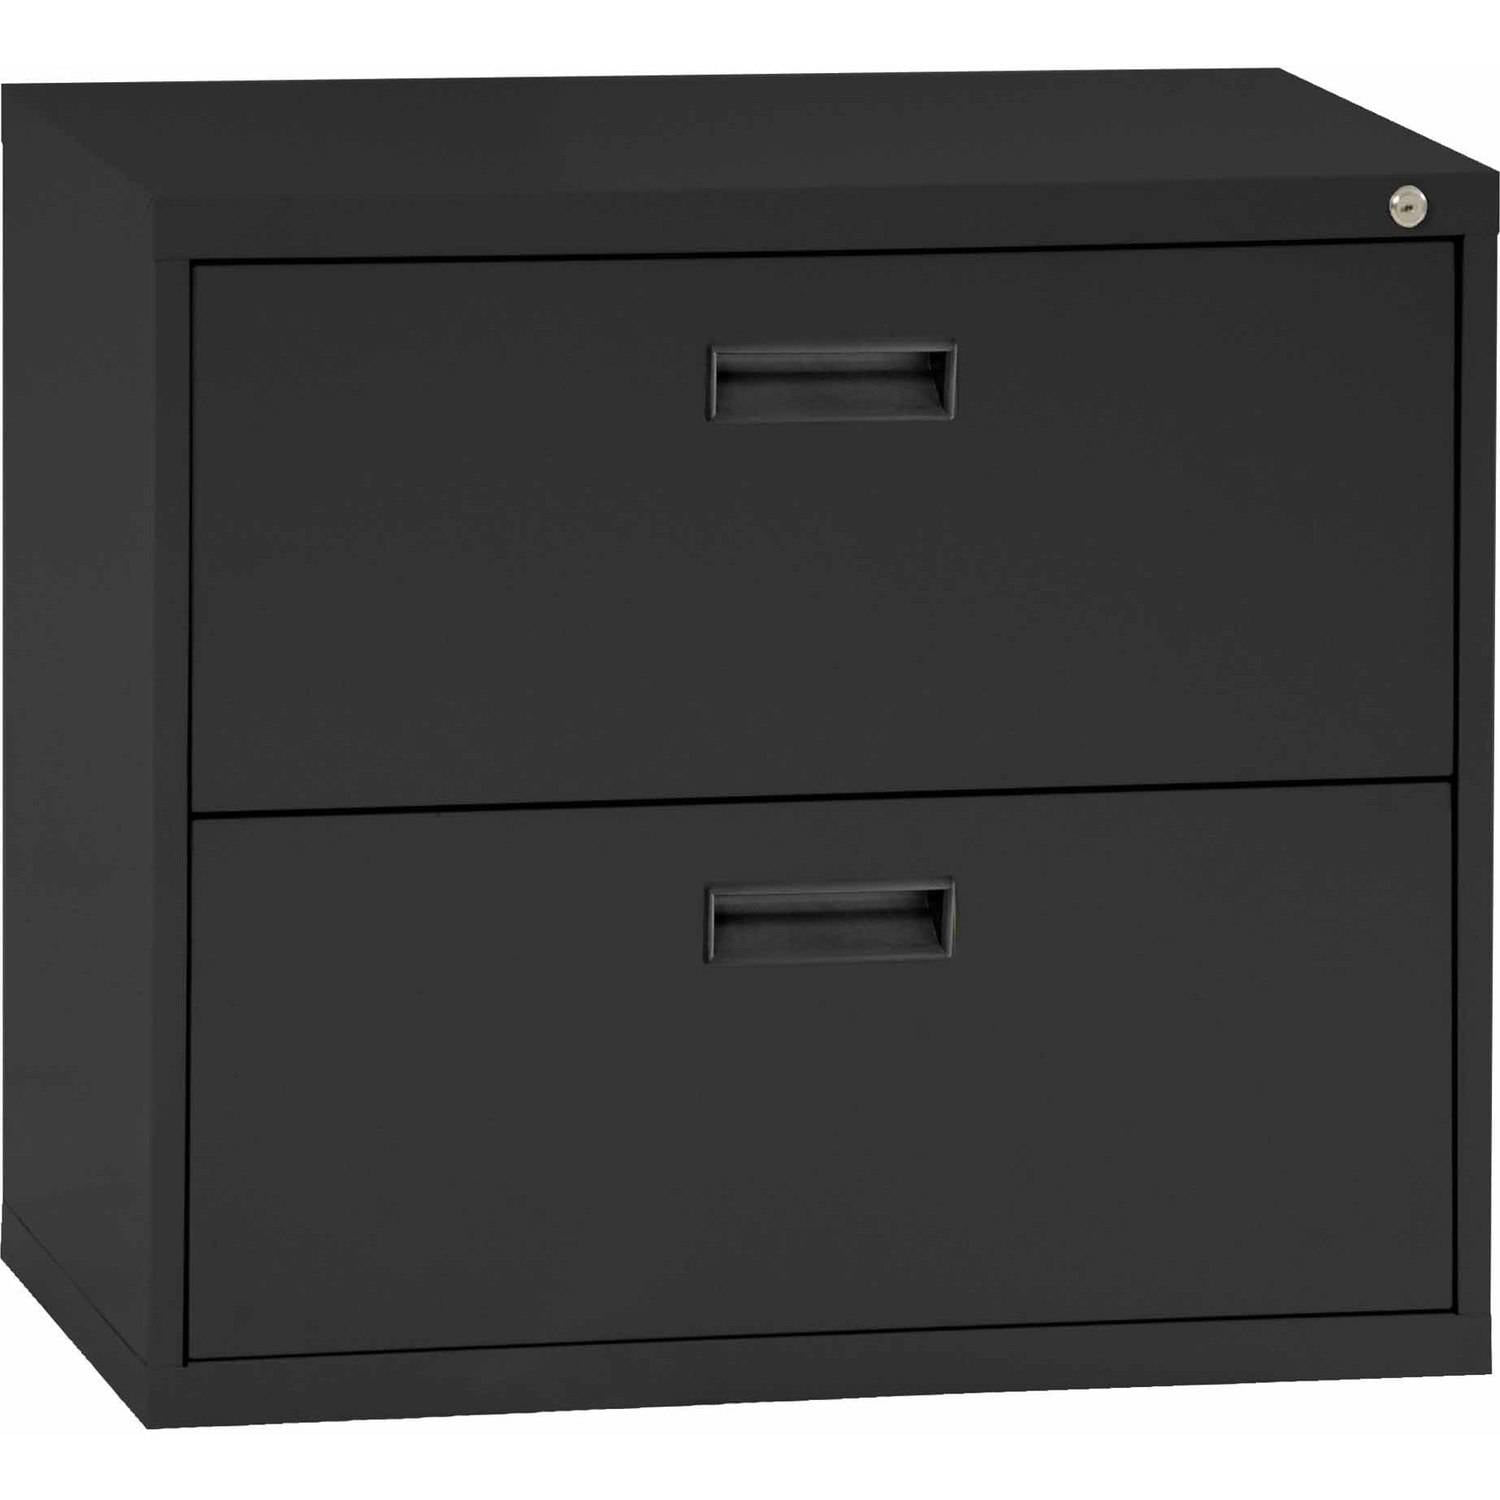 Gentil Sandusky Steel Lateral File Cabinet With Plastic Handle, 2 Drawers,  E202L 09   Walmart.com